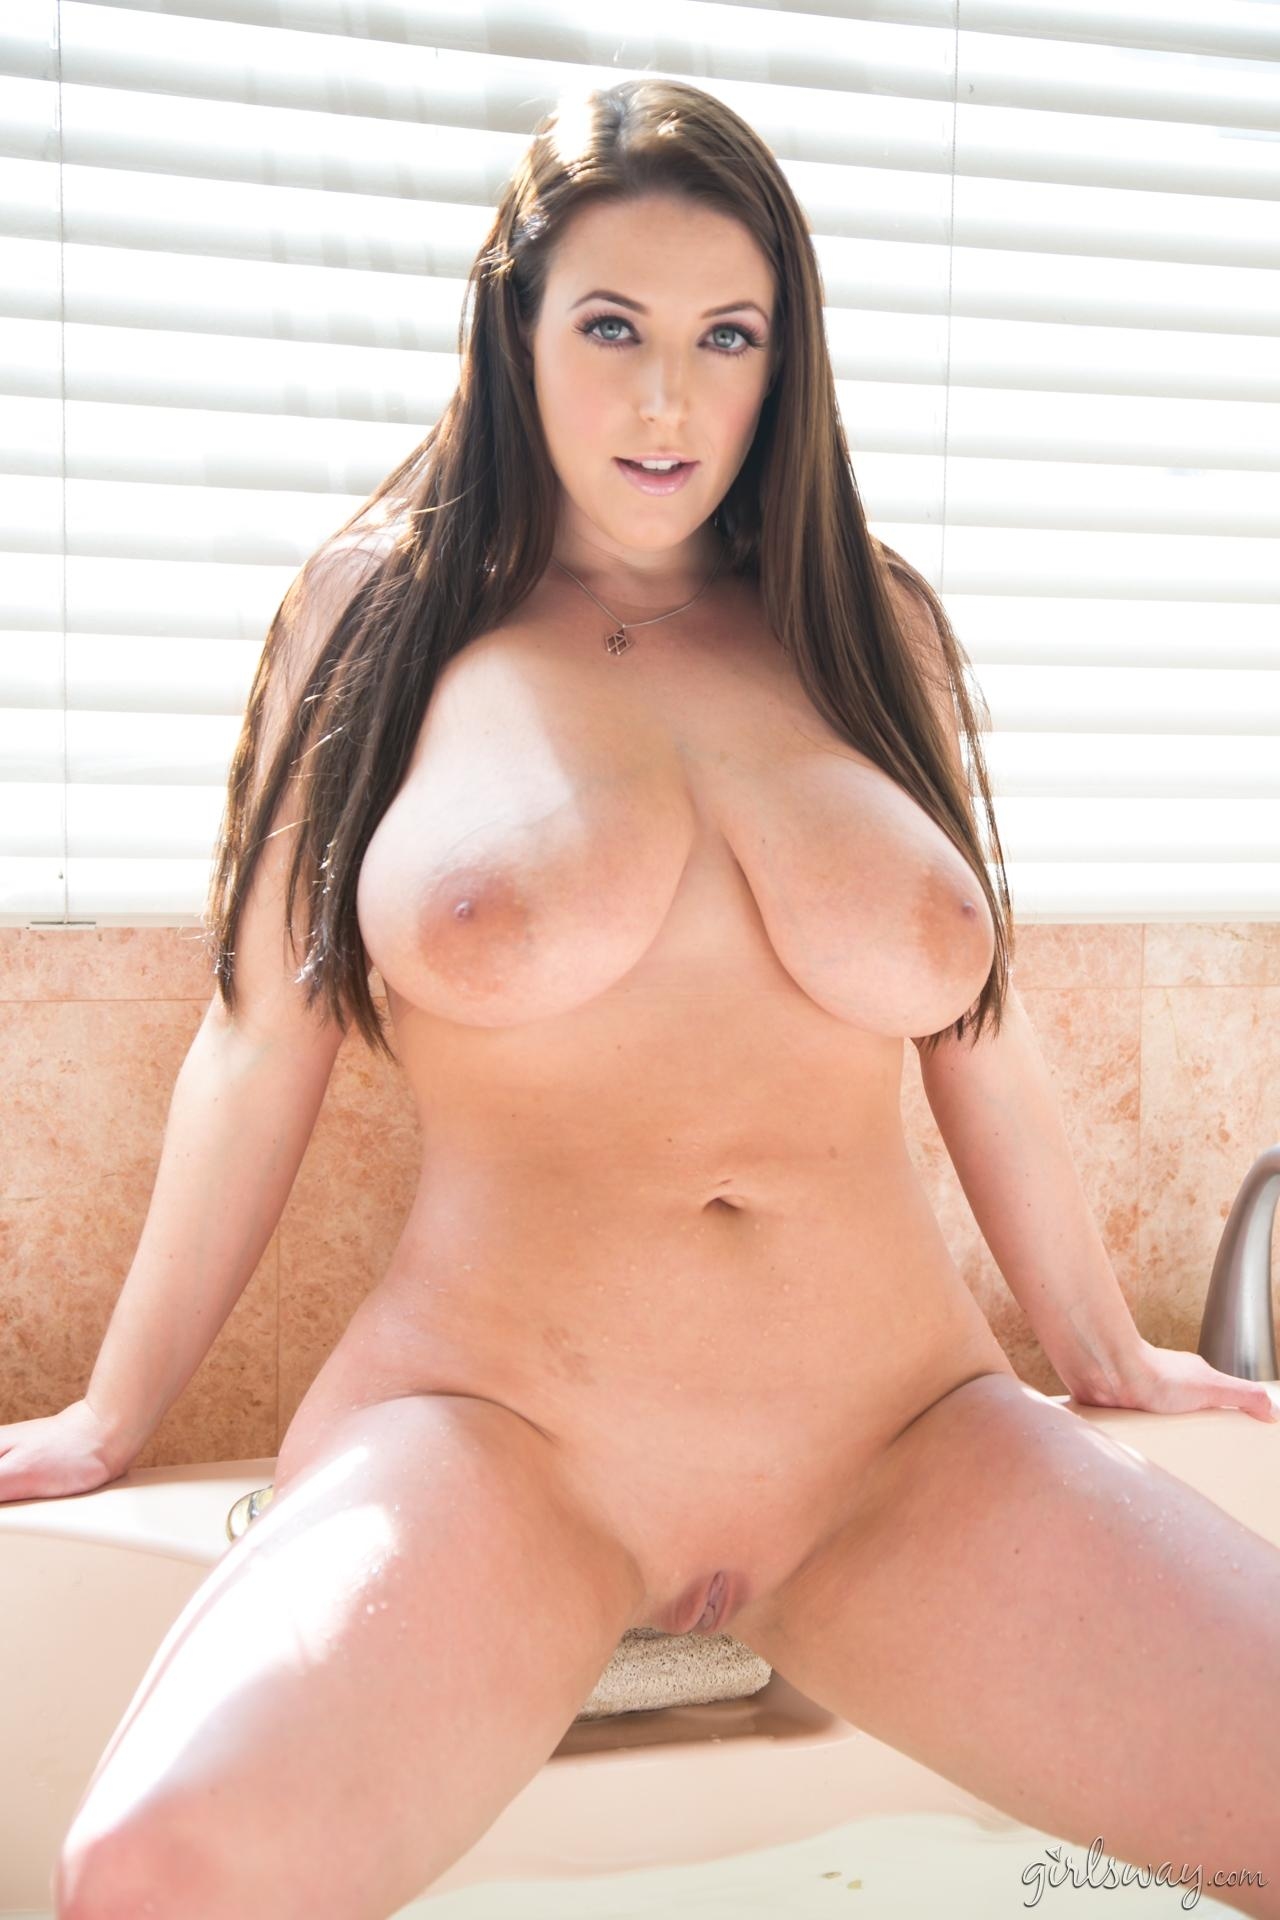 Busty Girl Angela White Gets Hot And Wet In The Bath  Coed Cherry-6622